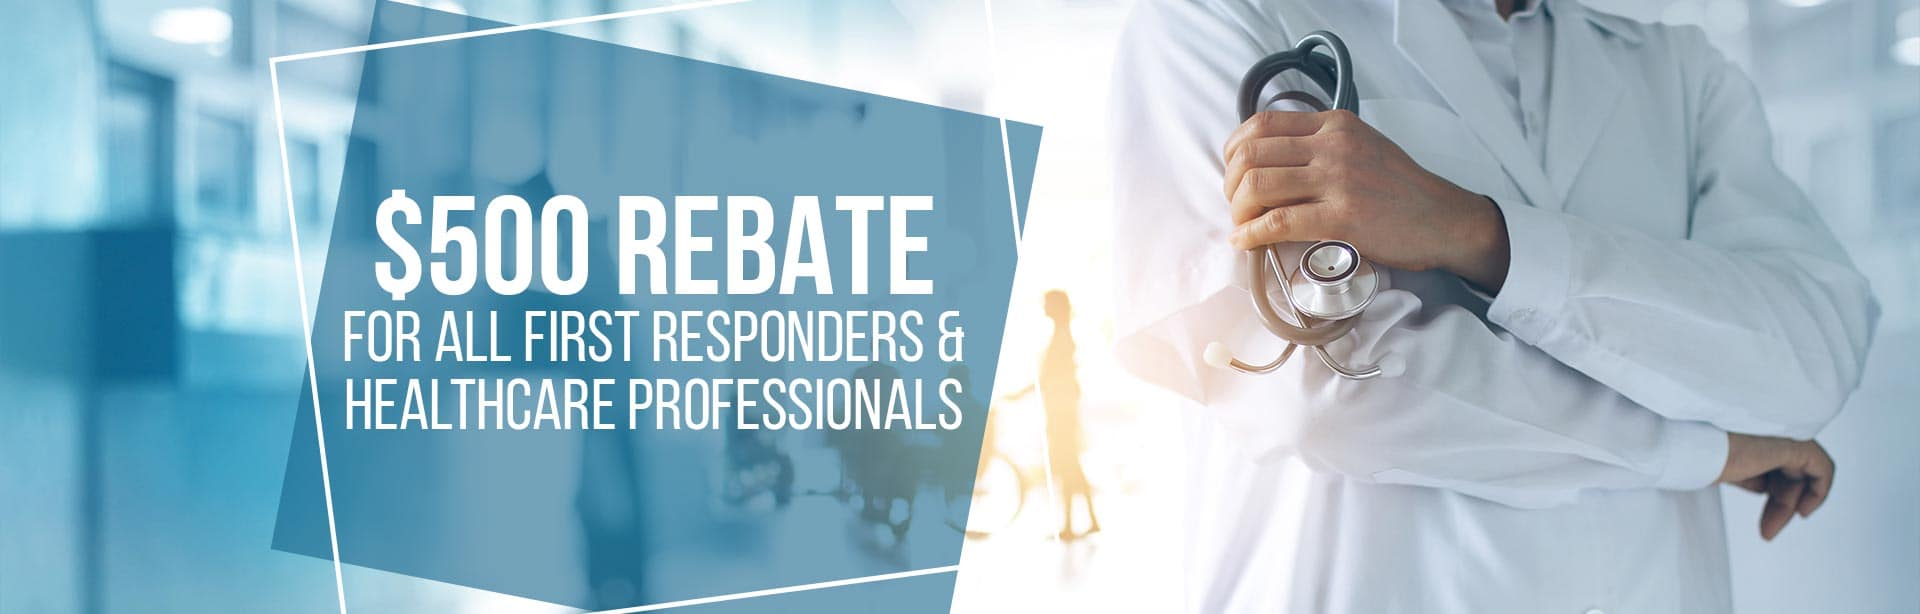 $500 rebate for for Healthcare Professionals